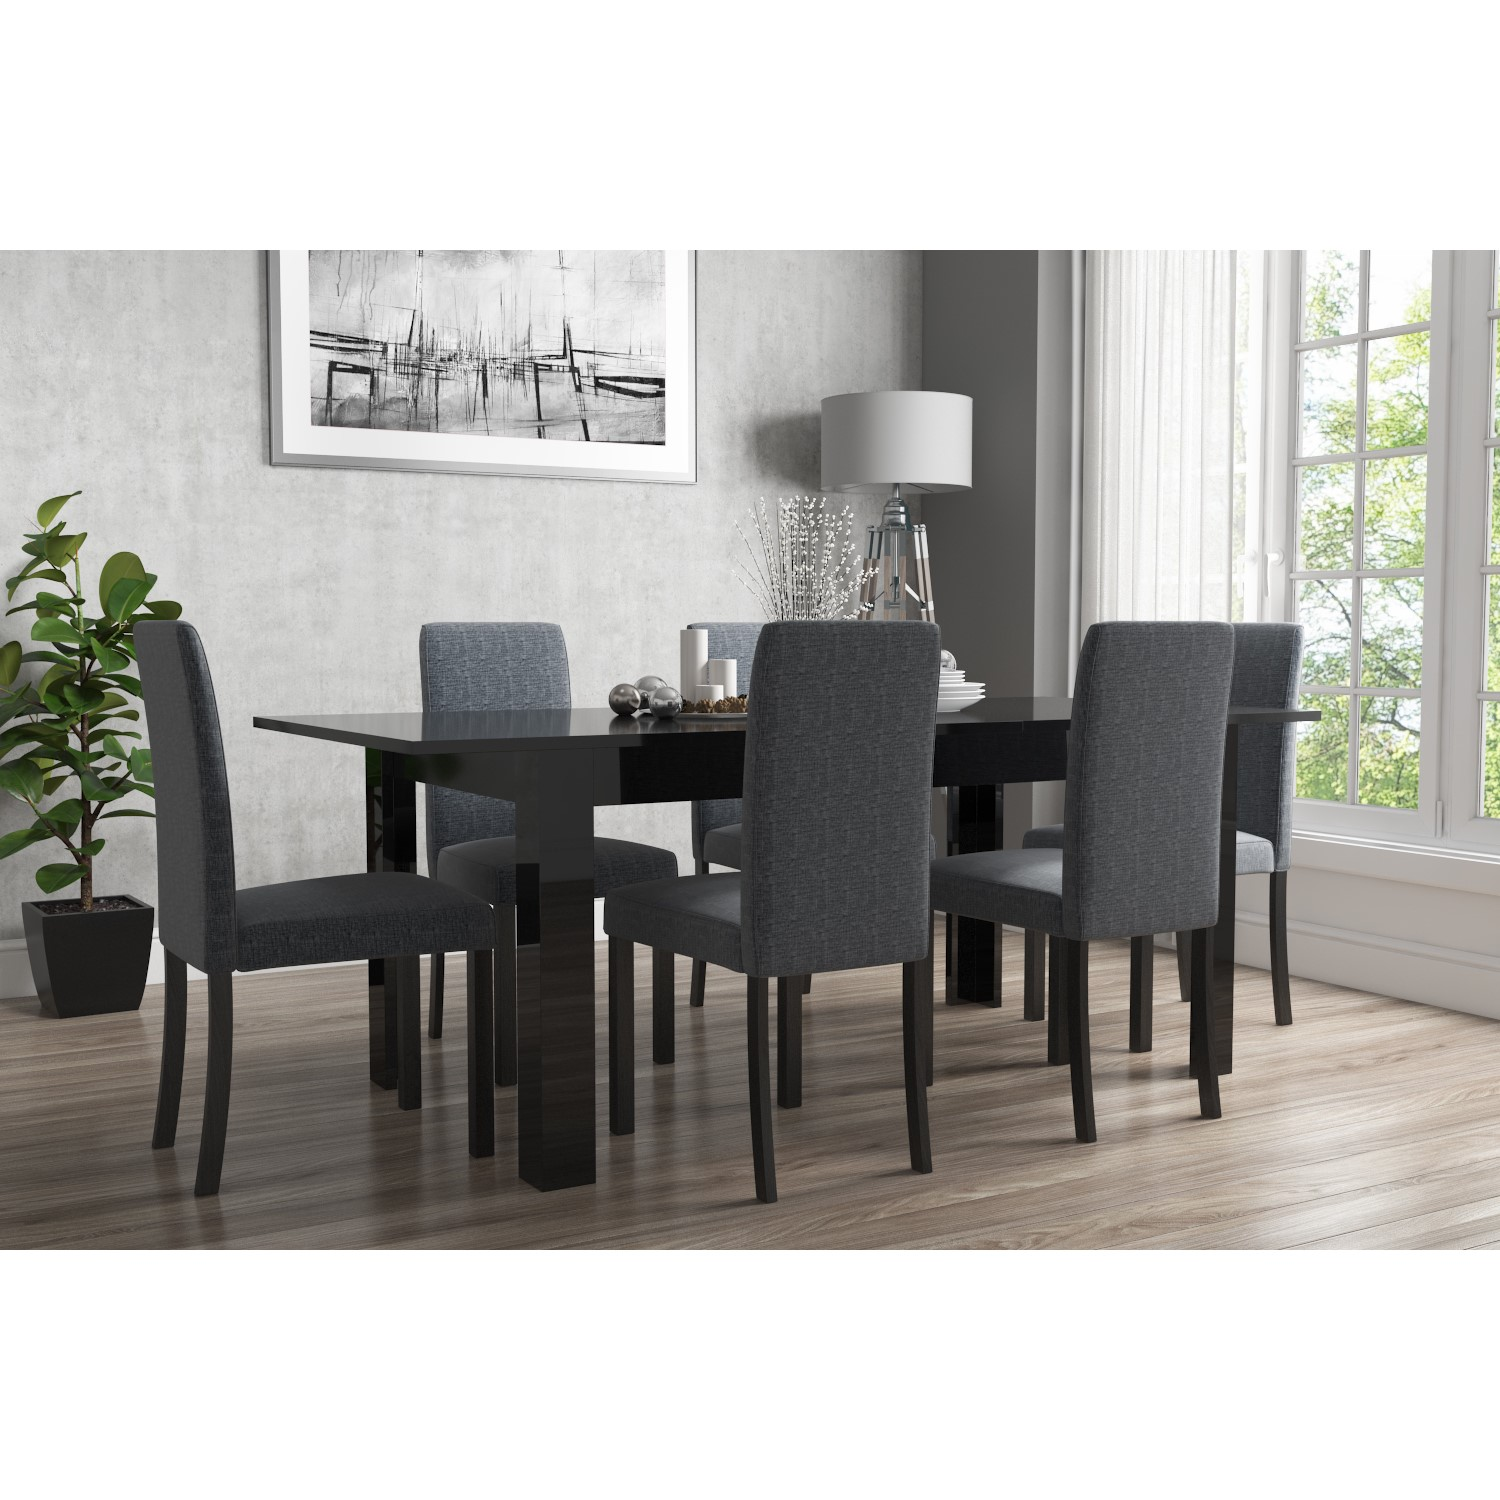 Cucina Letters Kitchen Decor, Extendable Dining Table In Black High Gloss With 6 Grey Chairs Vivienne New Haven Buyitdirect Ie